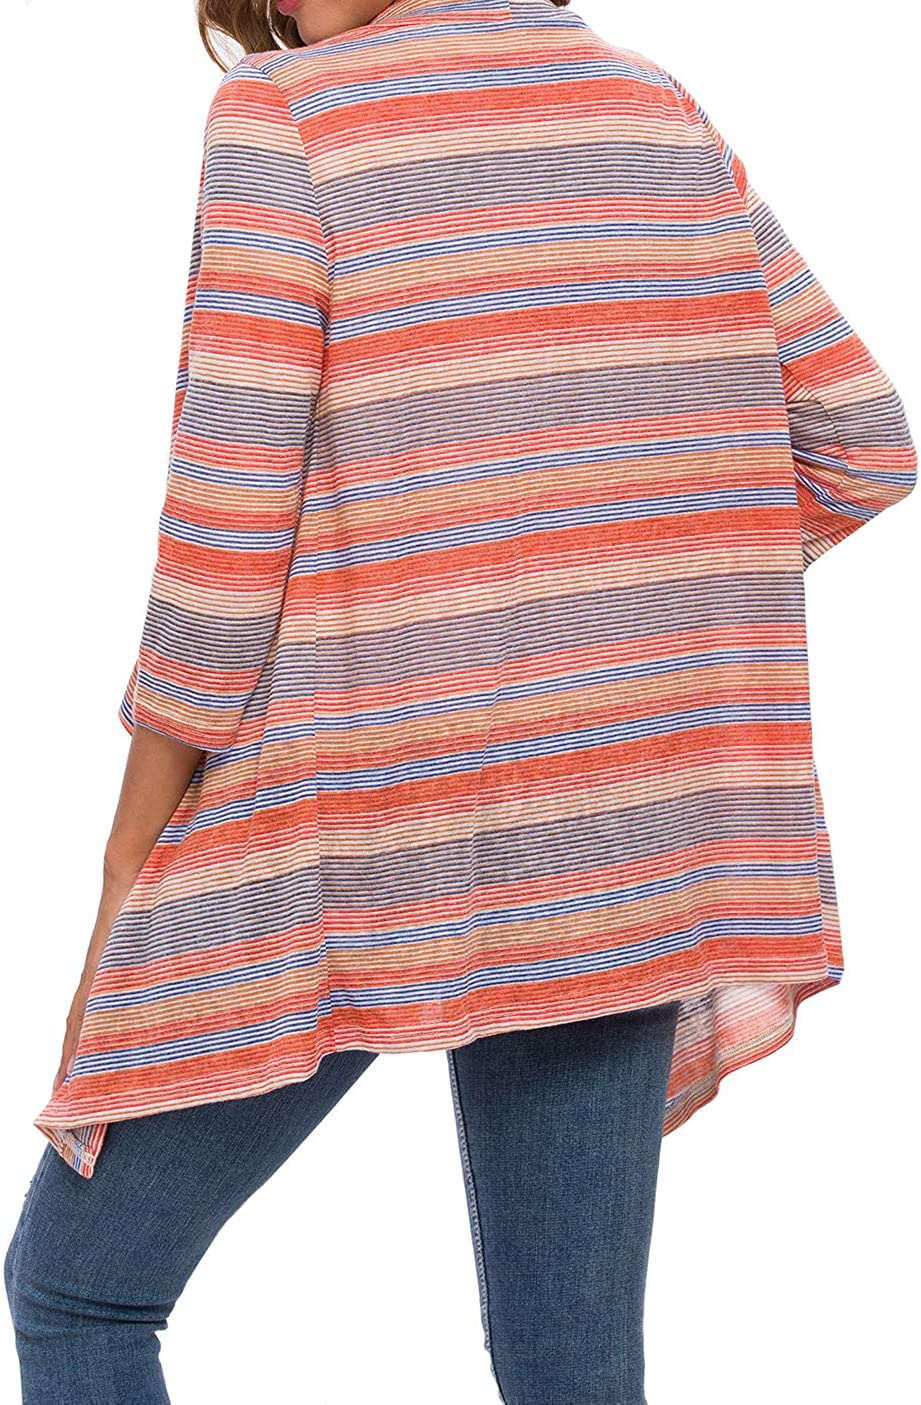 DEARCASE Womens 3//4 Sleeve Cardigans Striped Printed Open Front Draped Kimono Loose Cardigan